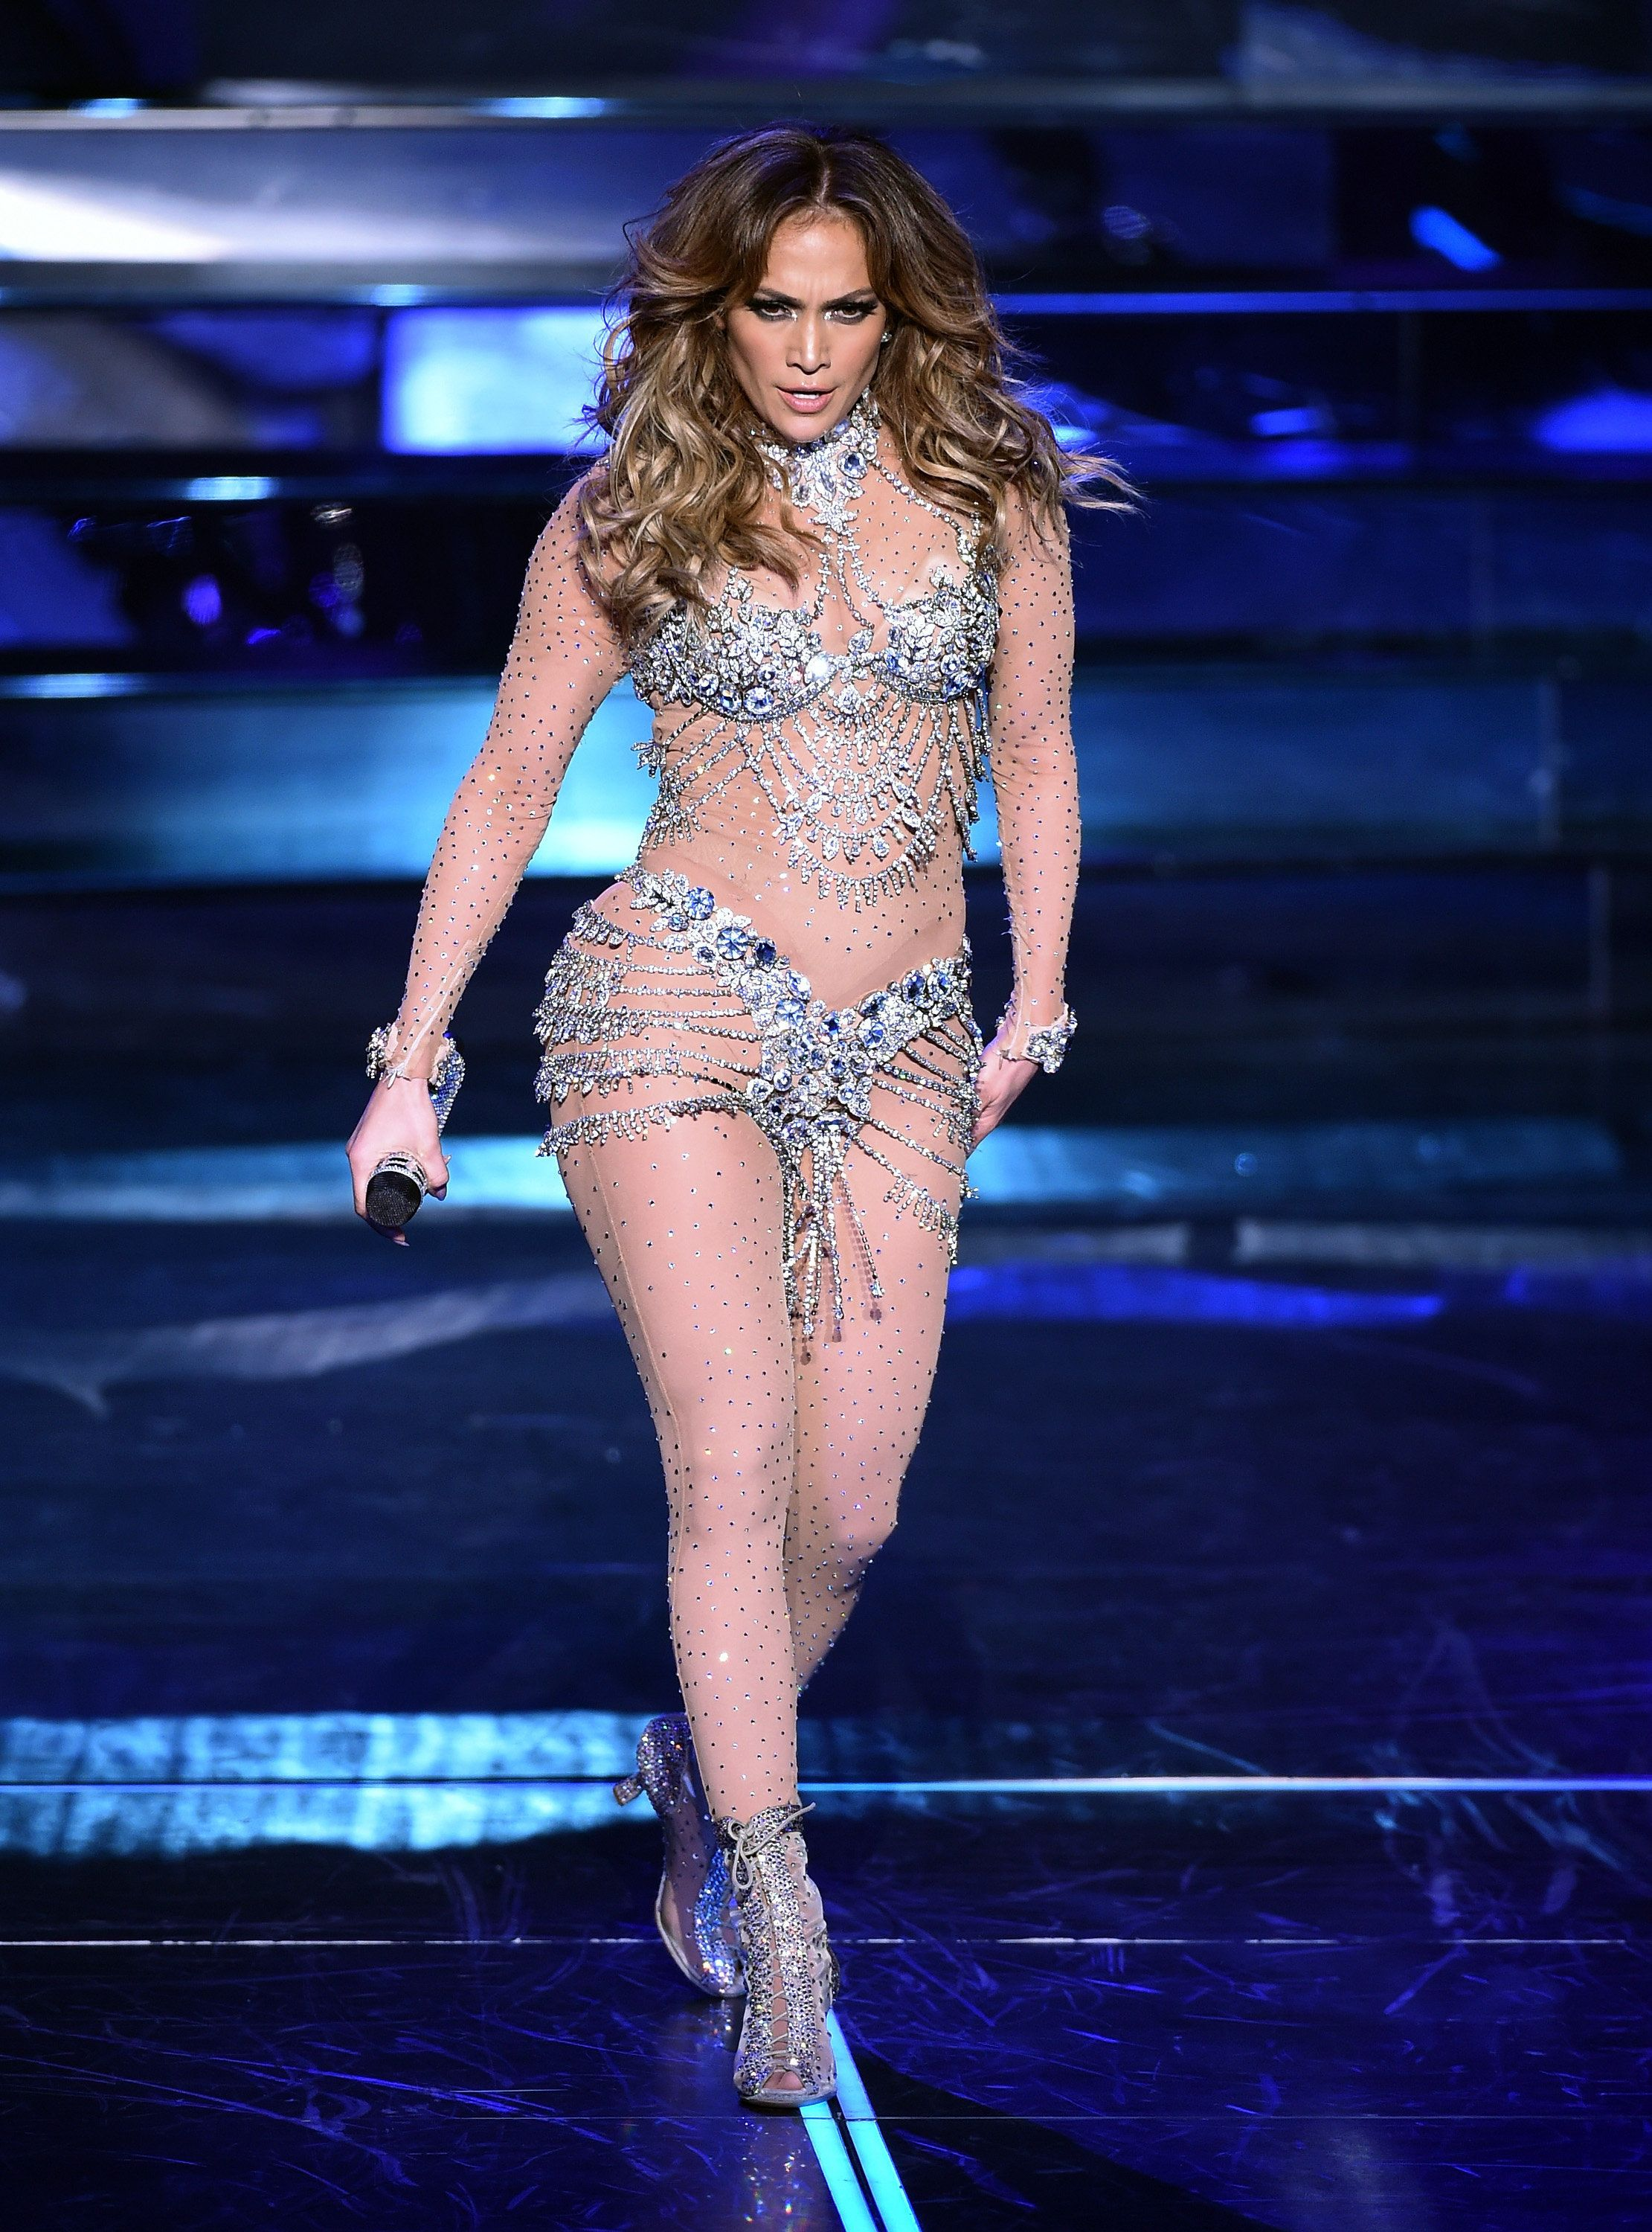 LAS VEGAS, NV - JANUARY 20:  Singer/actress Jennifer Lopez performs during the launch of her residency 'JENNIFER LOPEZ: ALL I HAVE' at The Axis at Planet Hollywood Resort & Casino on January 20, 2016 in  Las Vegas, Nevada.  (Photo by Ethan Miller/Getty Images)